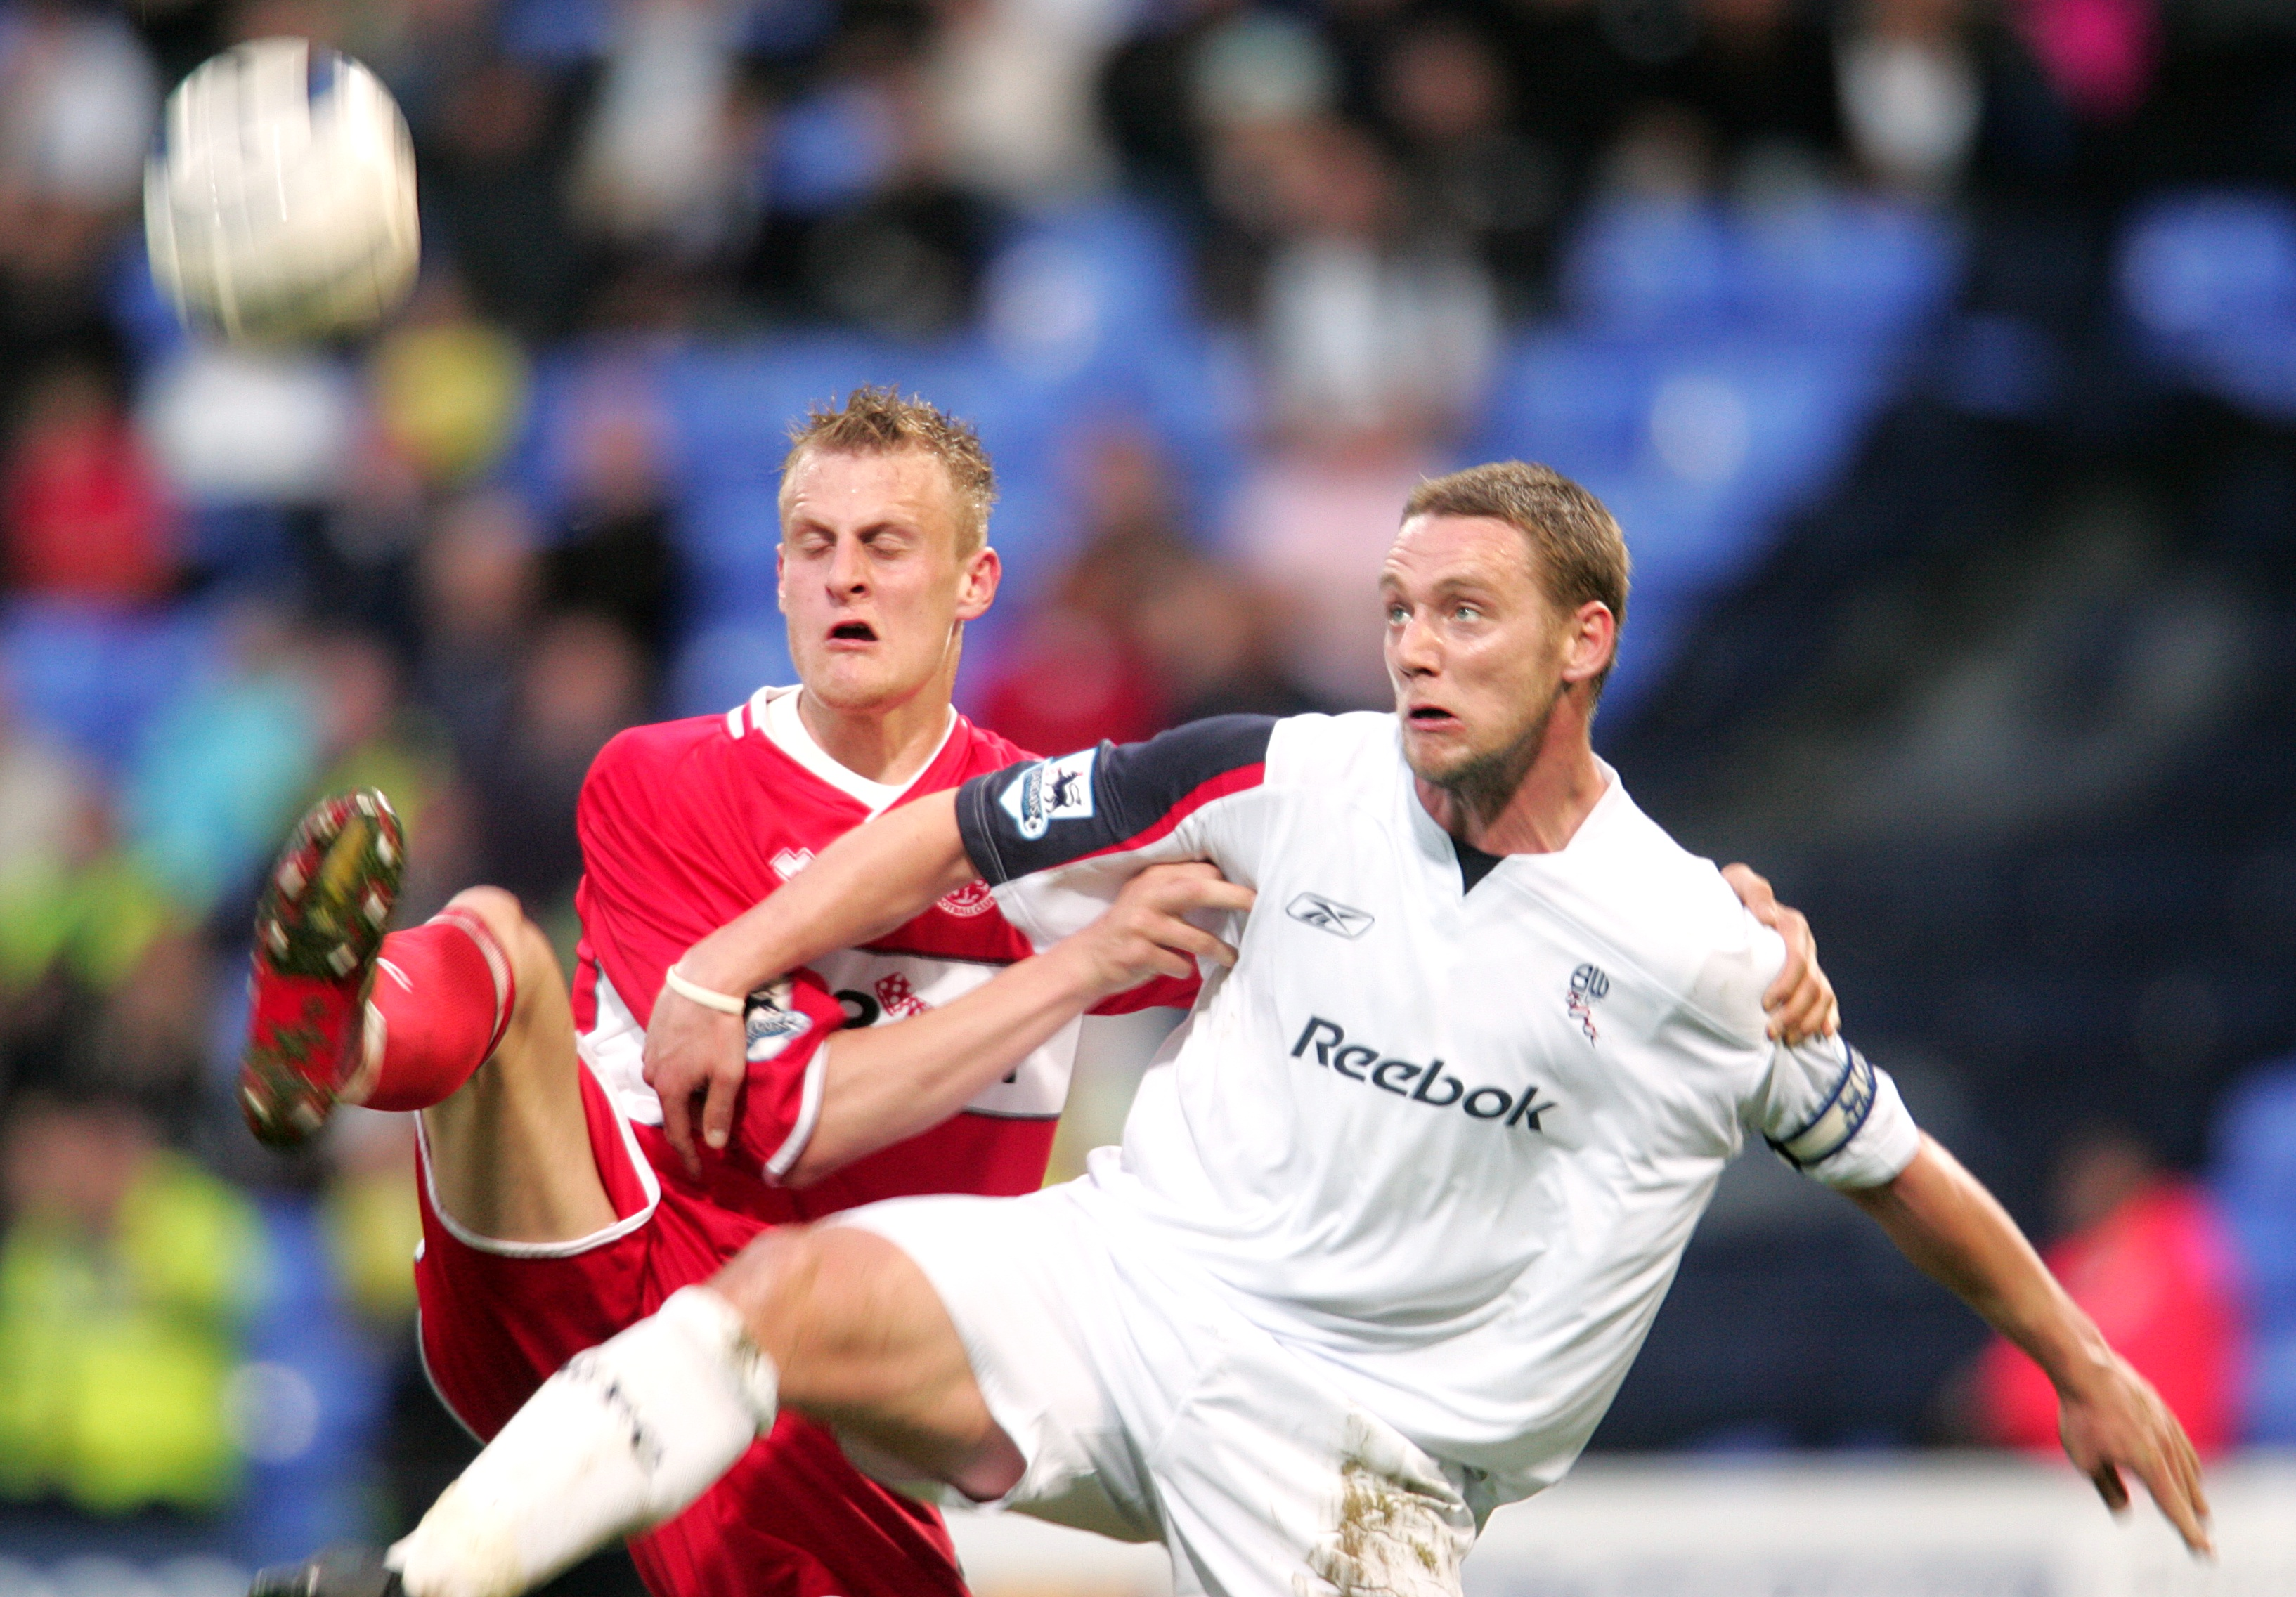 Soccer - FA Barclays Premiership - Bolton Wanderers v Middlesbrough - The Reebok Stadium